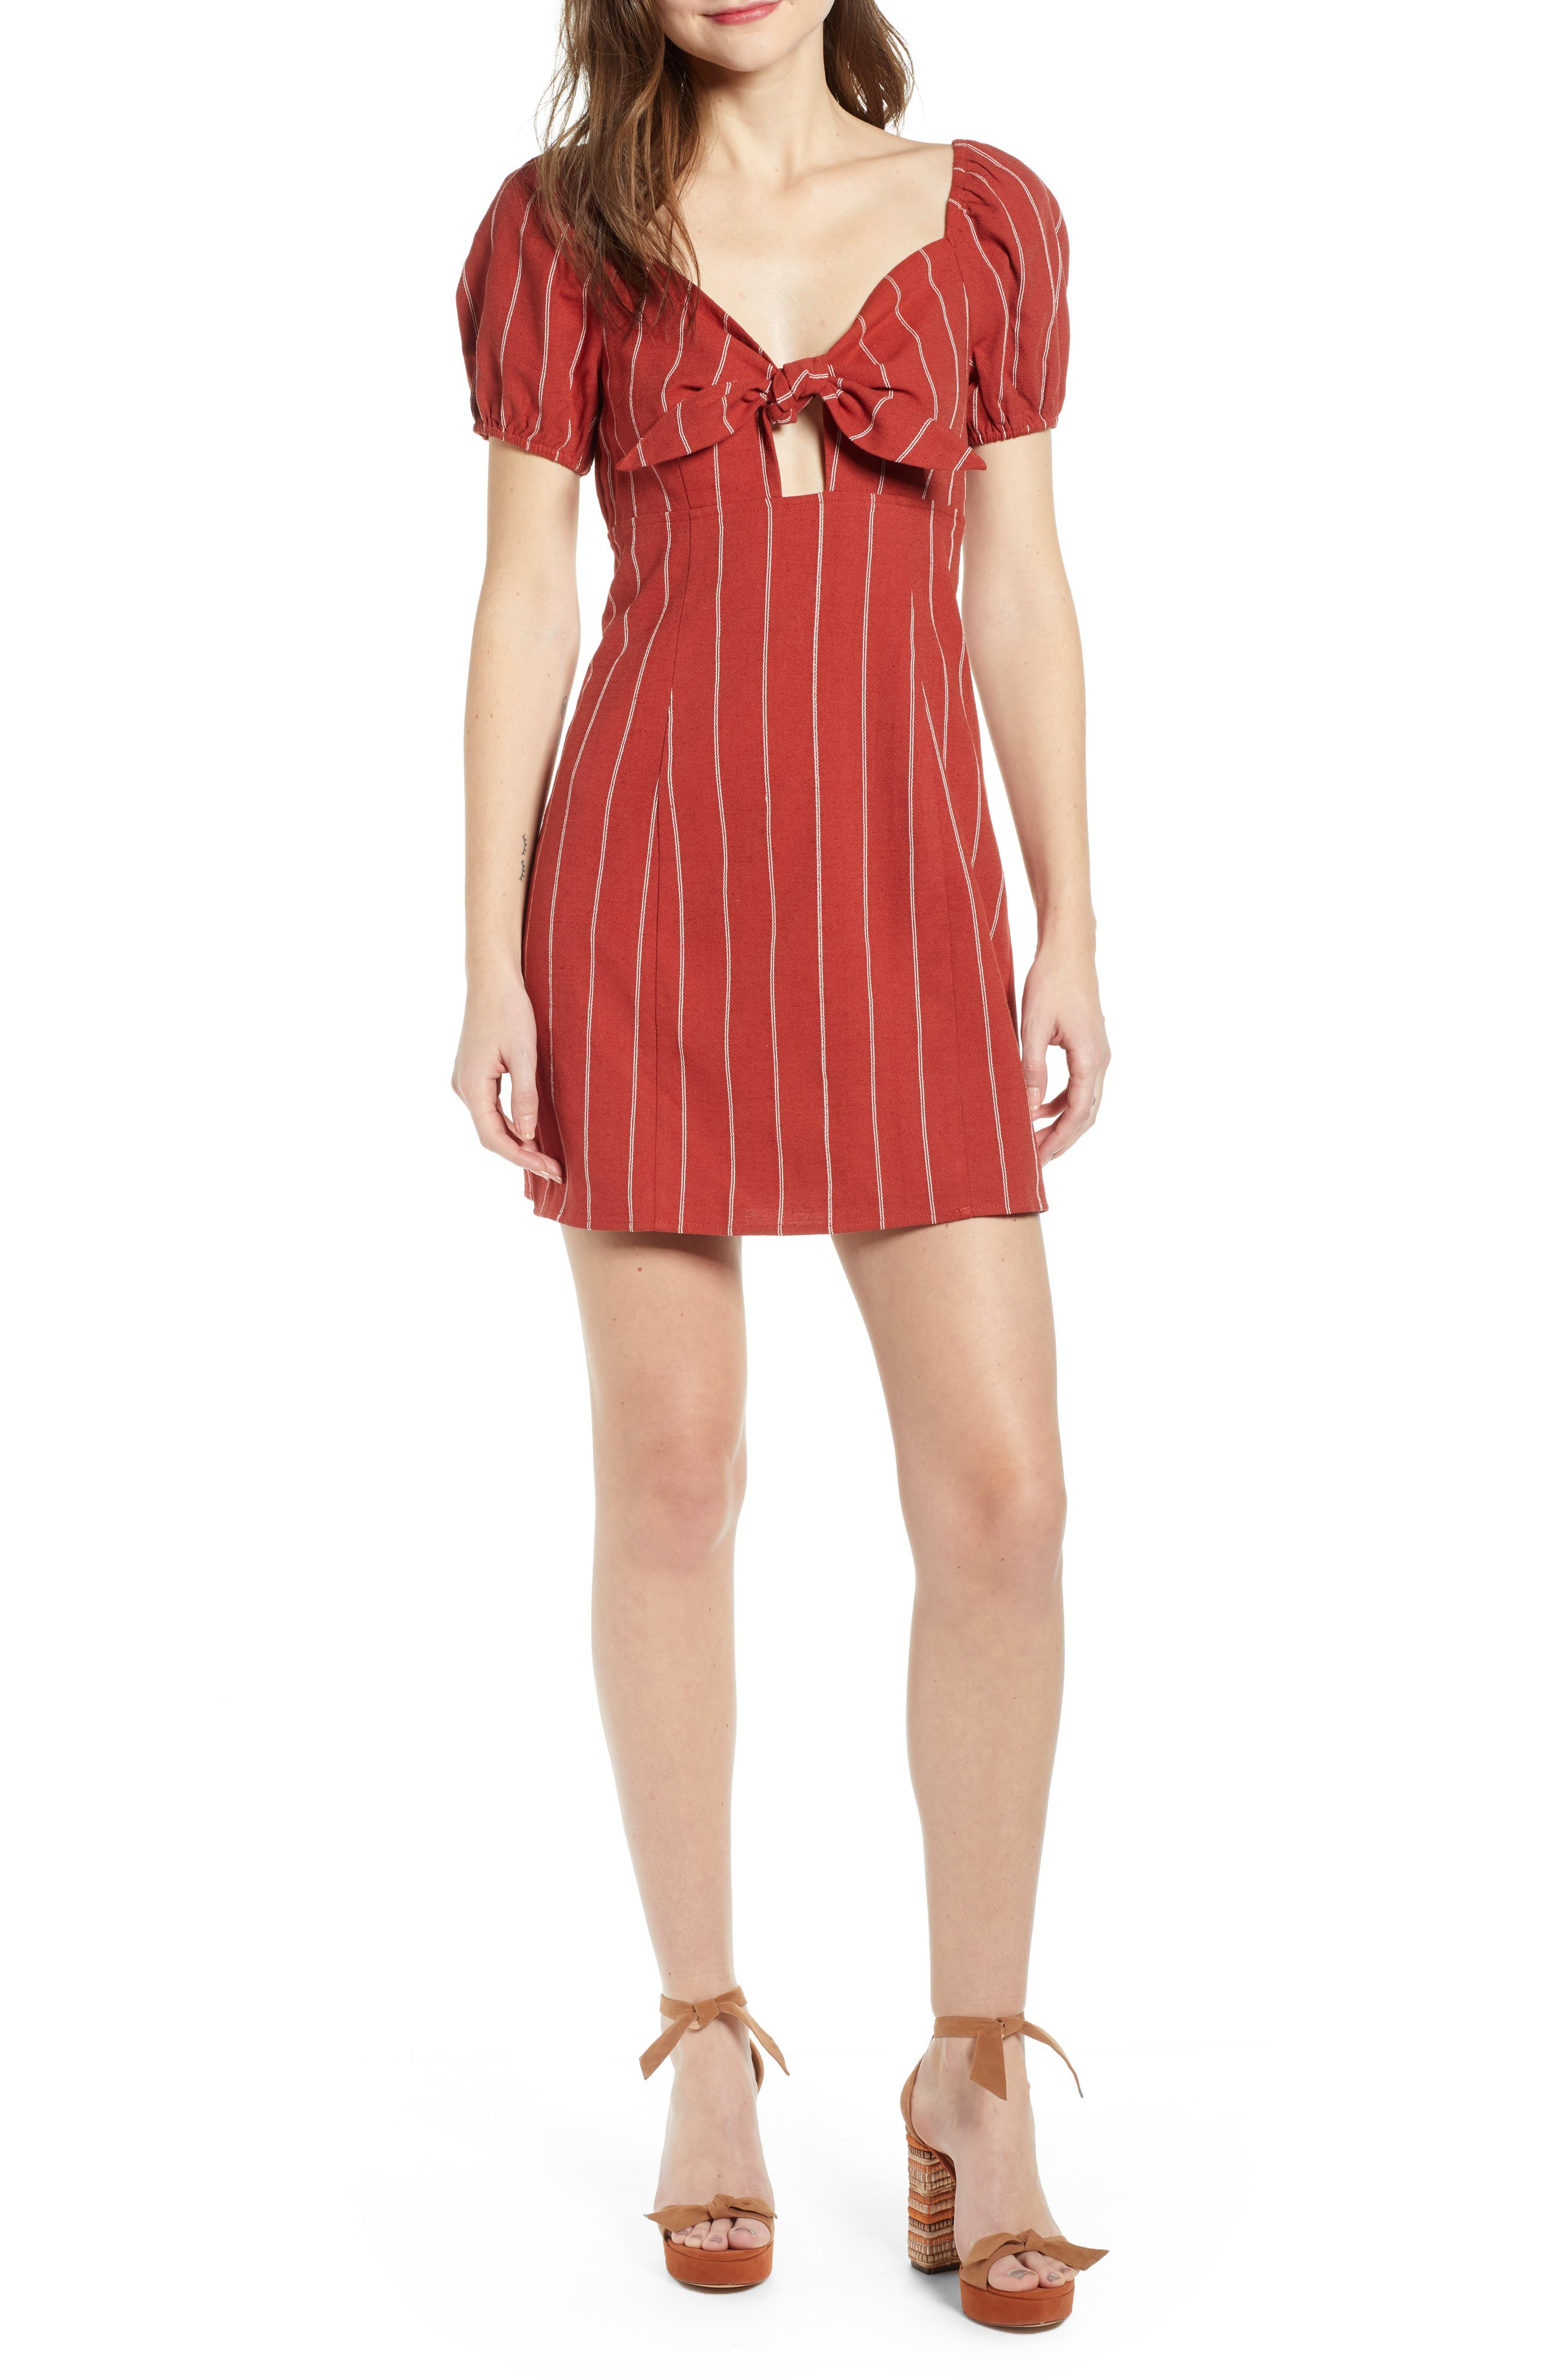 J.o.a. Stripe Tie Front Cotton & Linen Mini Dress, Red